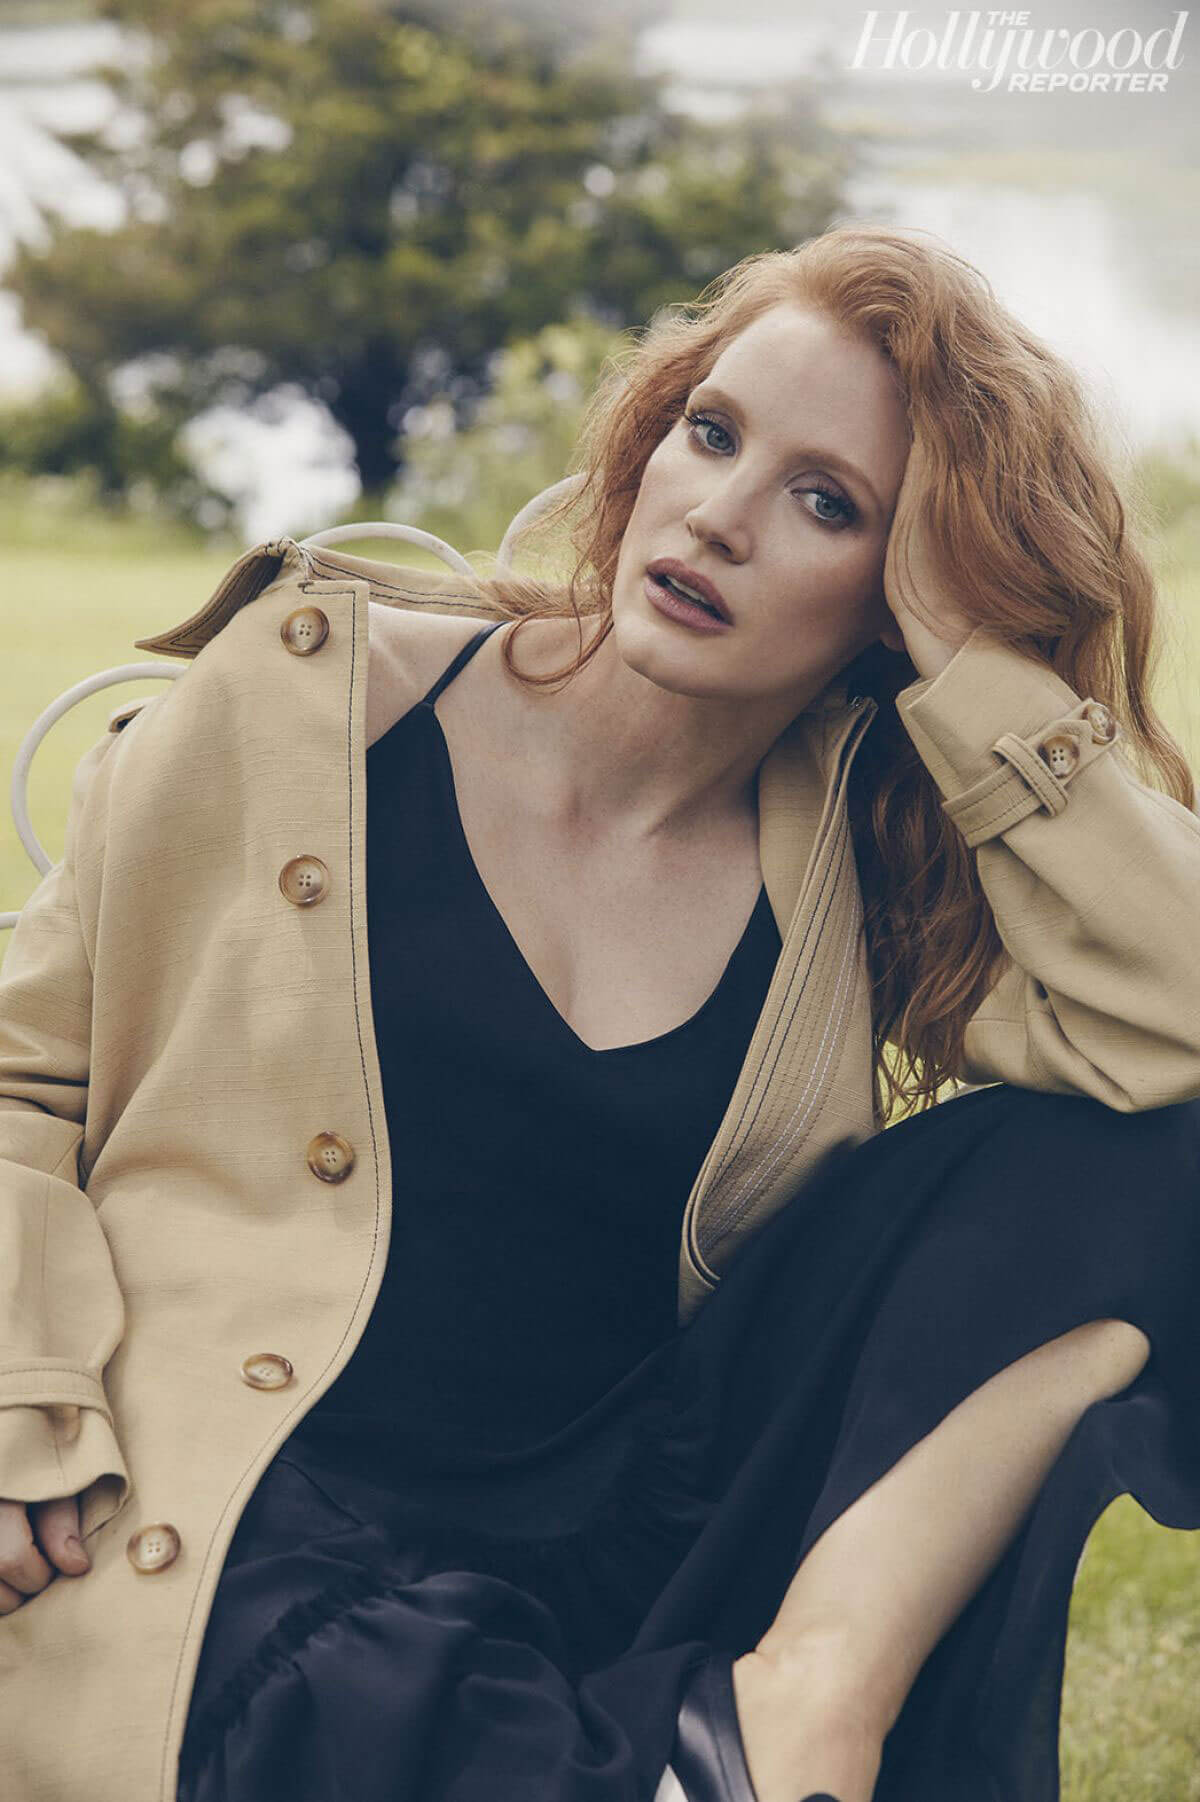 Jessica Chastain in The Hollywood Reporter, June 2018 Issue 3